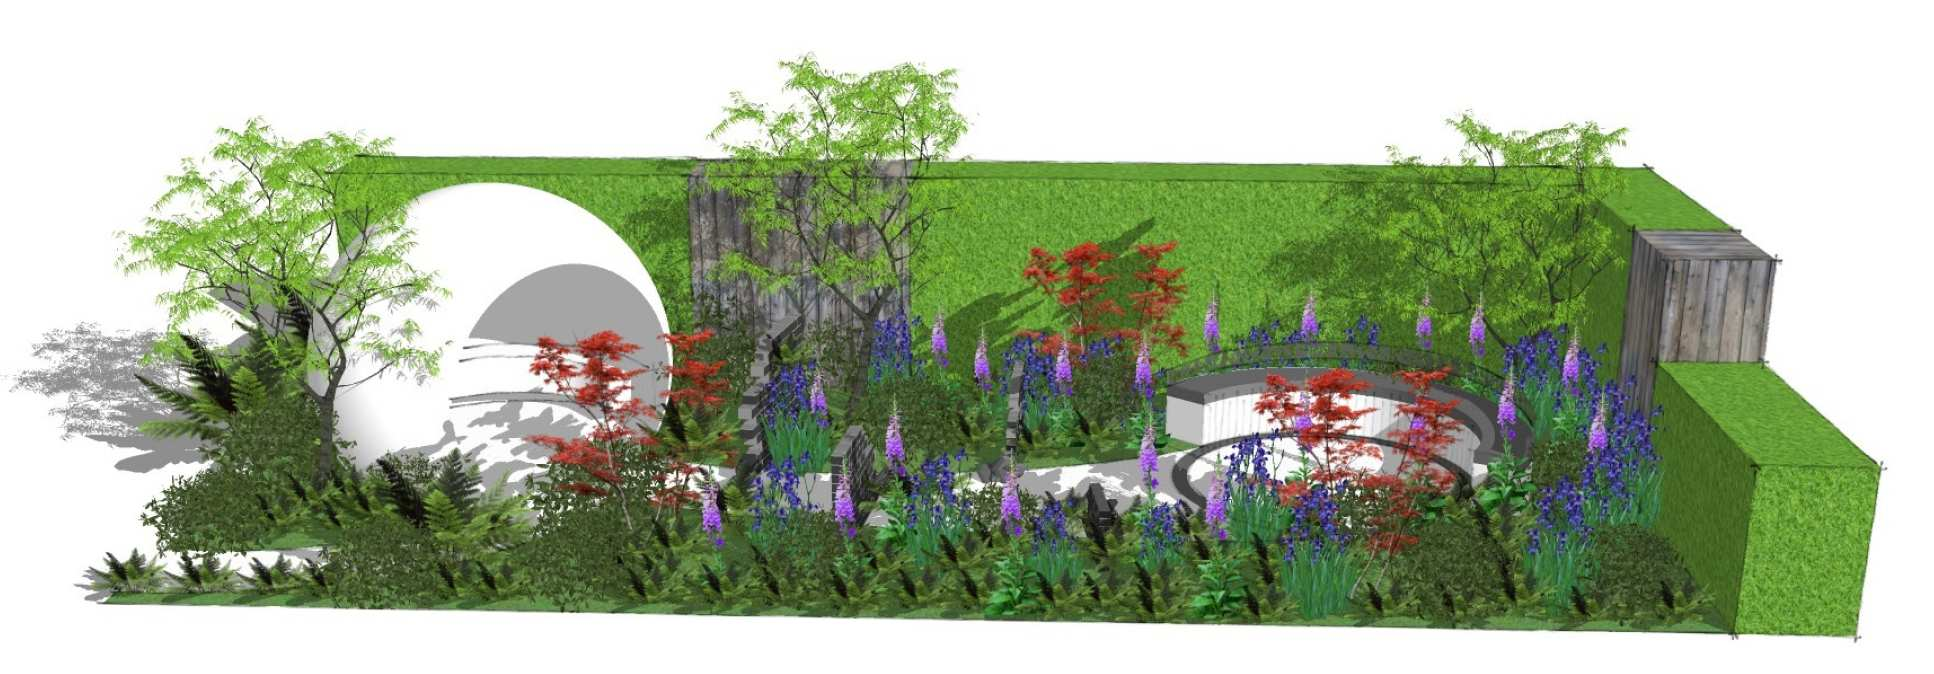 A 3D illustration of the HIV garden